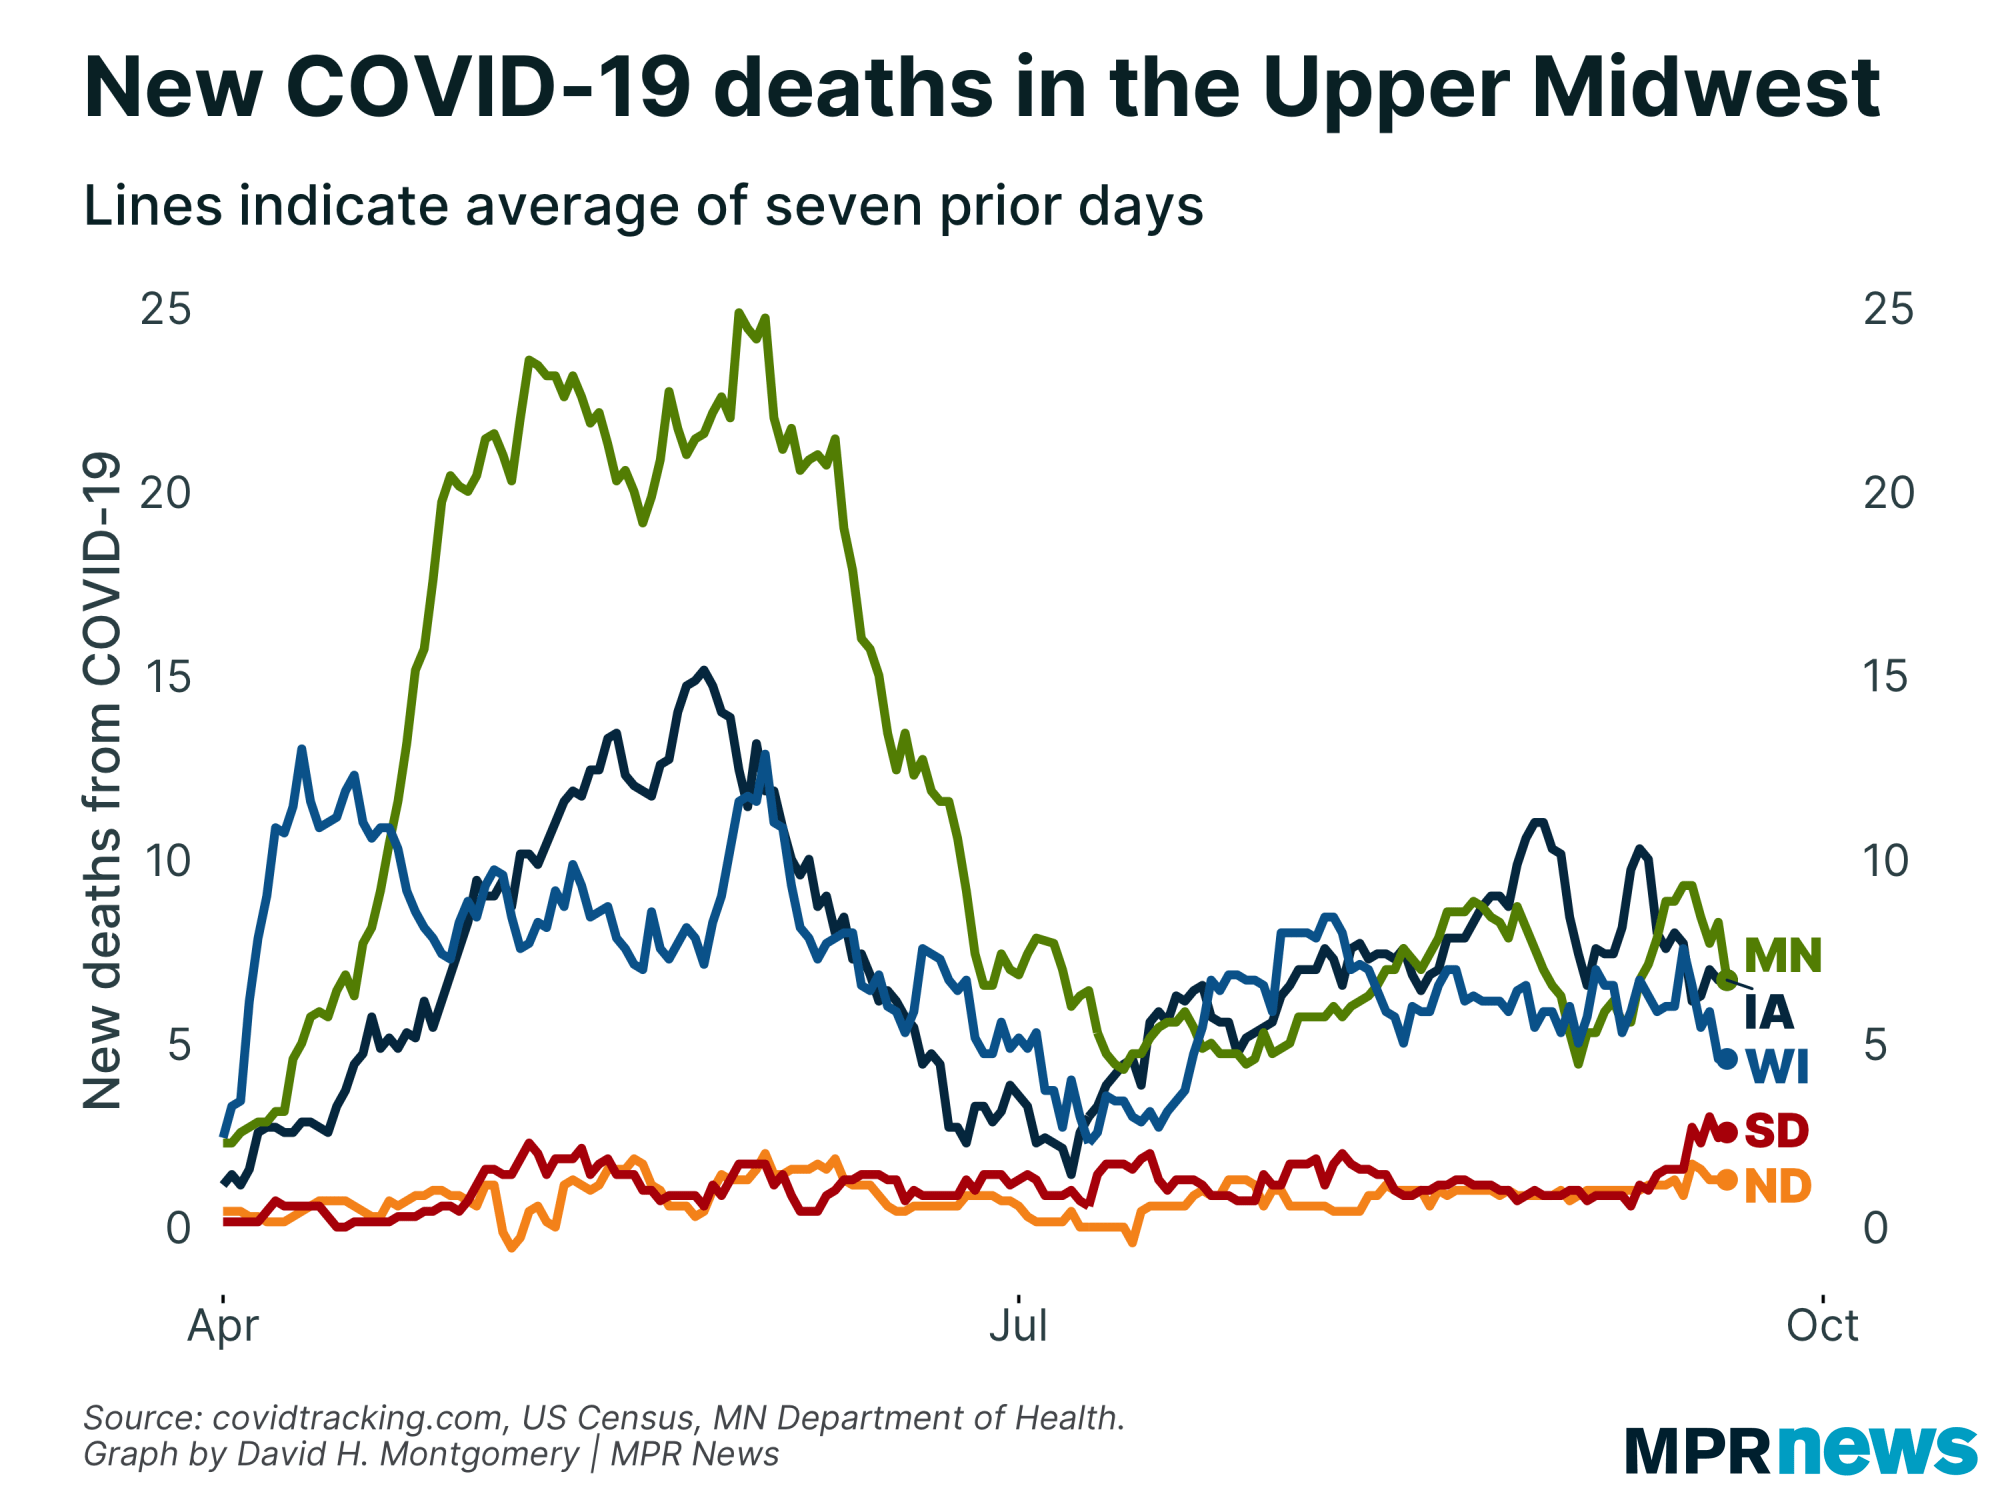 New COVID-19 deaths in the Upper Midwest